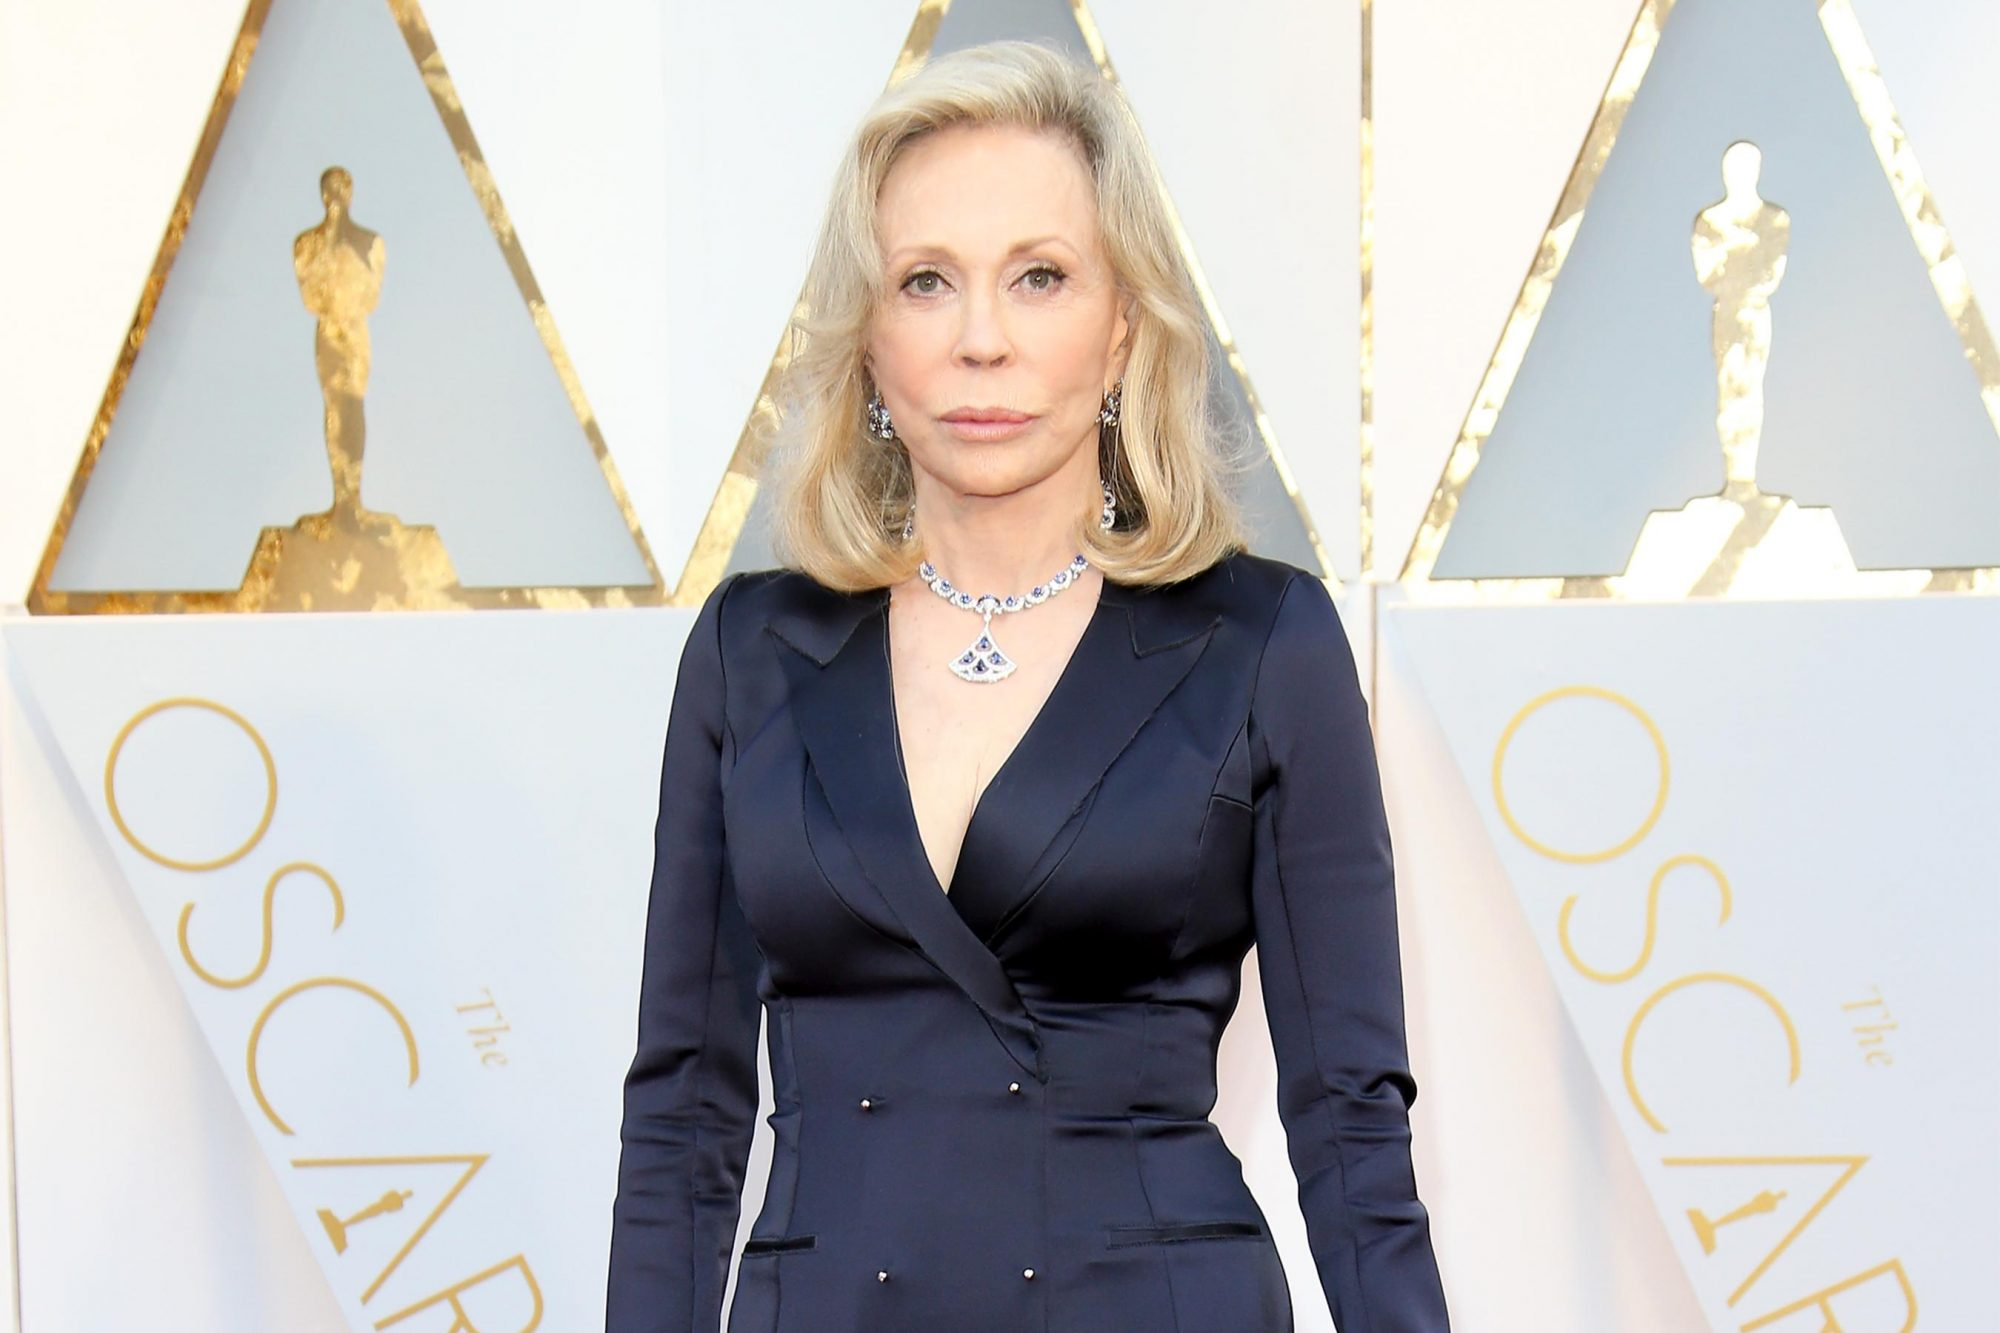 HOLLYWOOD, CA - FEBRUARY 26: Actress Faye Dunaway arrives at the 89th Annual Academy Awards at Hollywood & Highland Center on February 26, 2017 in Hollywood, California. (Photo by Dan MacMedan/Getty Images)